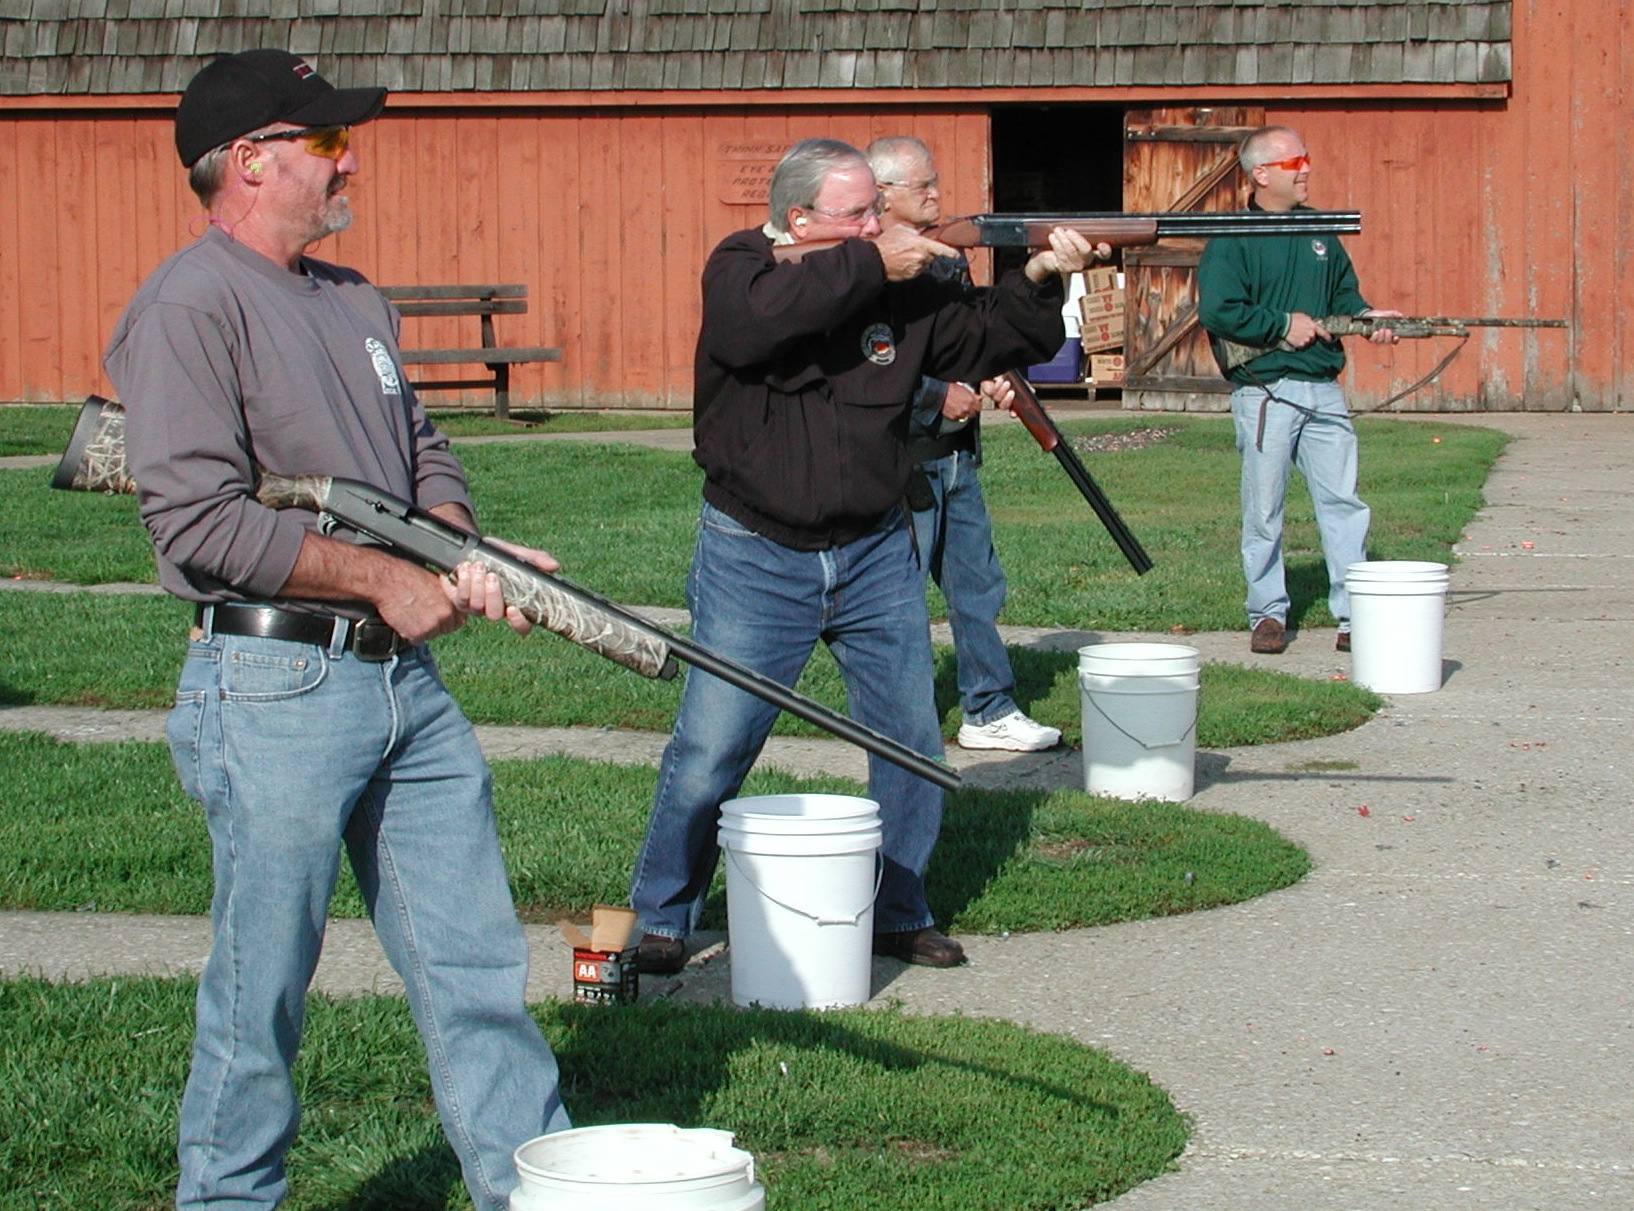 AIMING TO HELP – The United Way, union members and their friends are invited to take part in the 7th Annual Labor/United Way Trap Shoot & BBQ Friday, Sept. 12. – Labor Tribune file photo